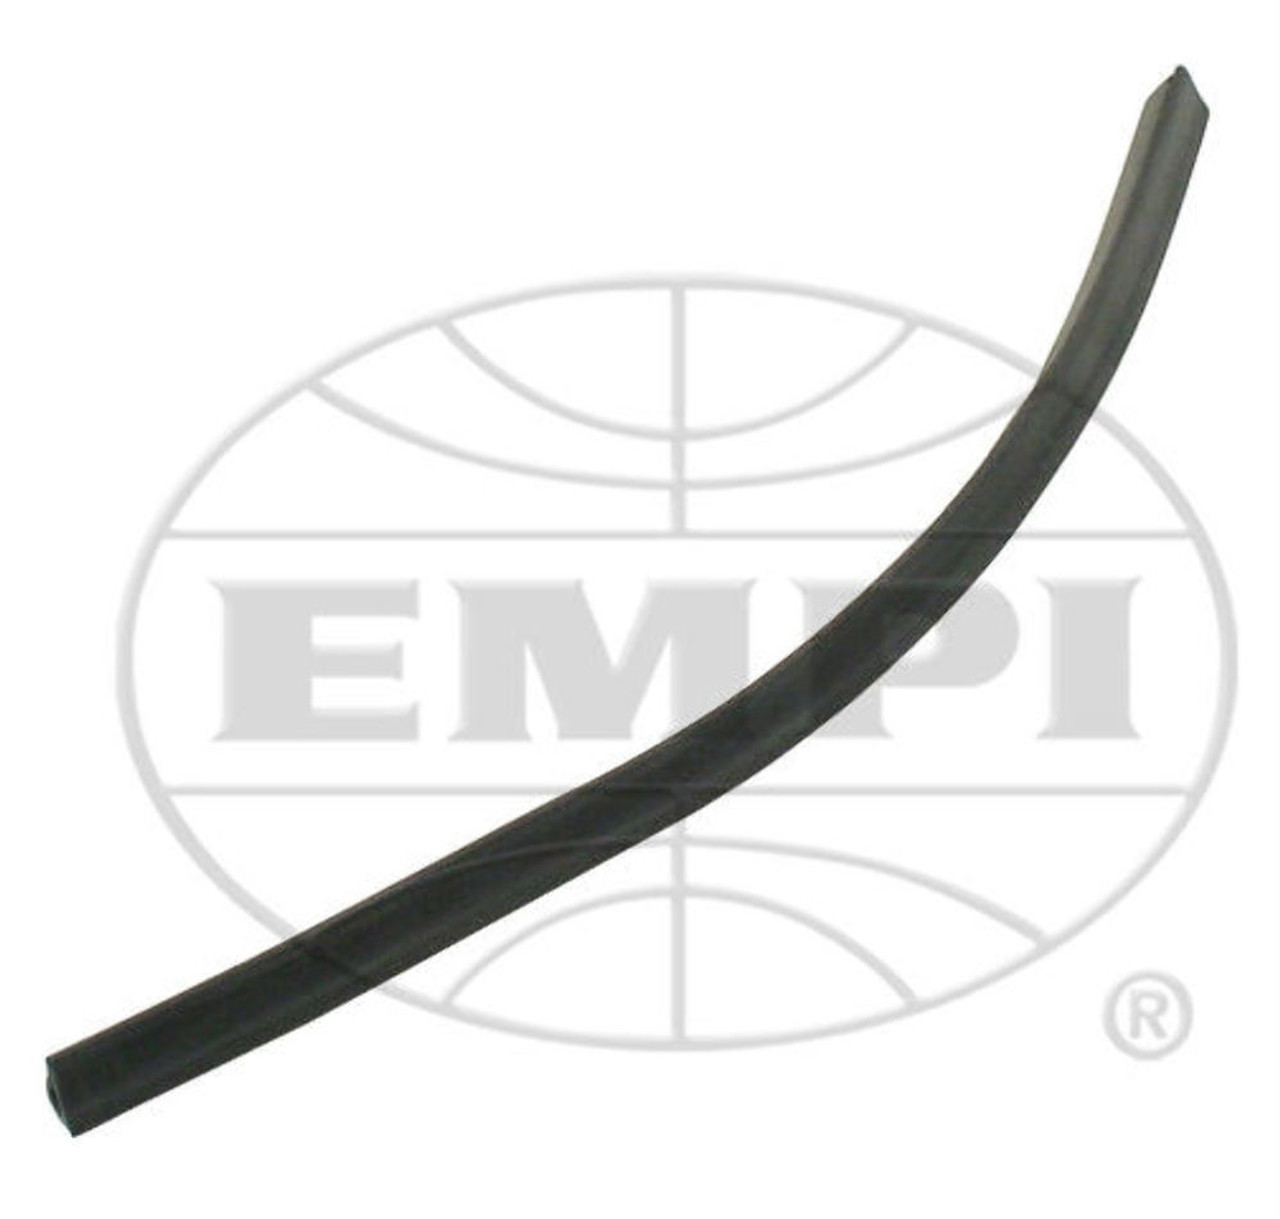 EMPI VW BUG TYPE 1 65-77,2 68-79, 3 64-73 VENT WINDOW POST SEAL EACH 241 837 465